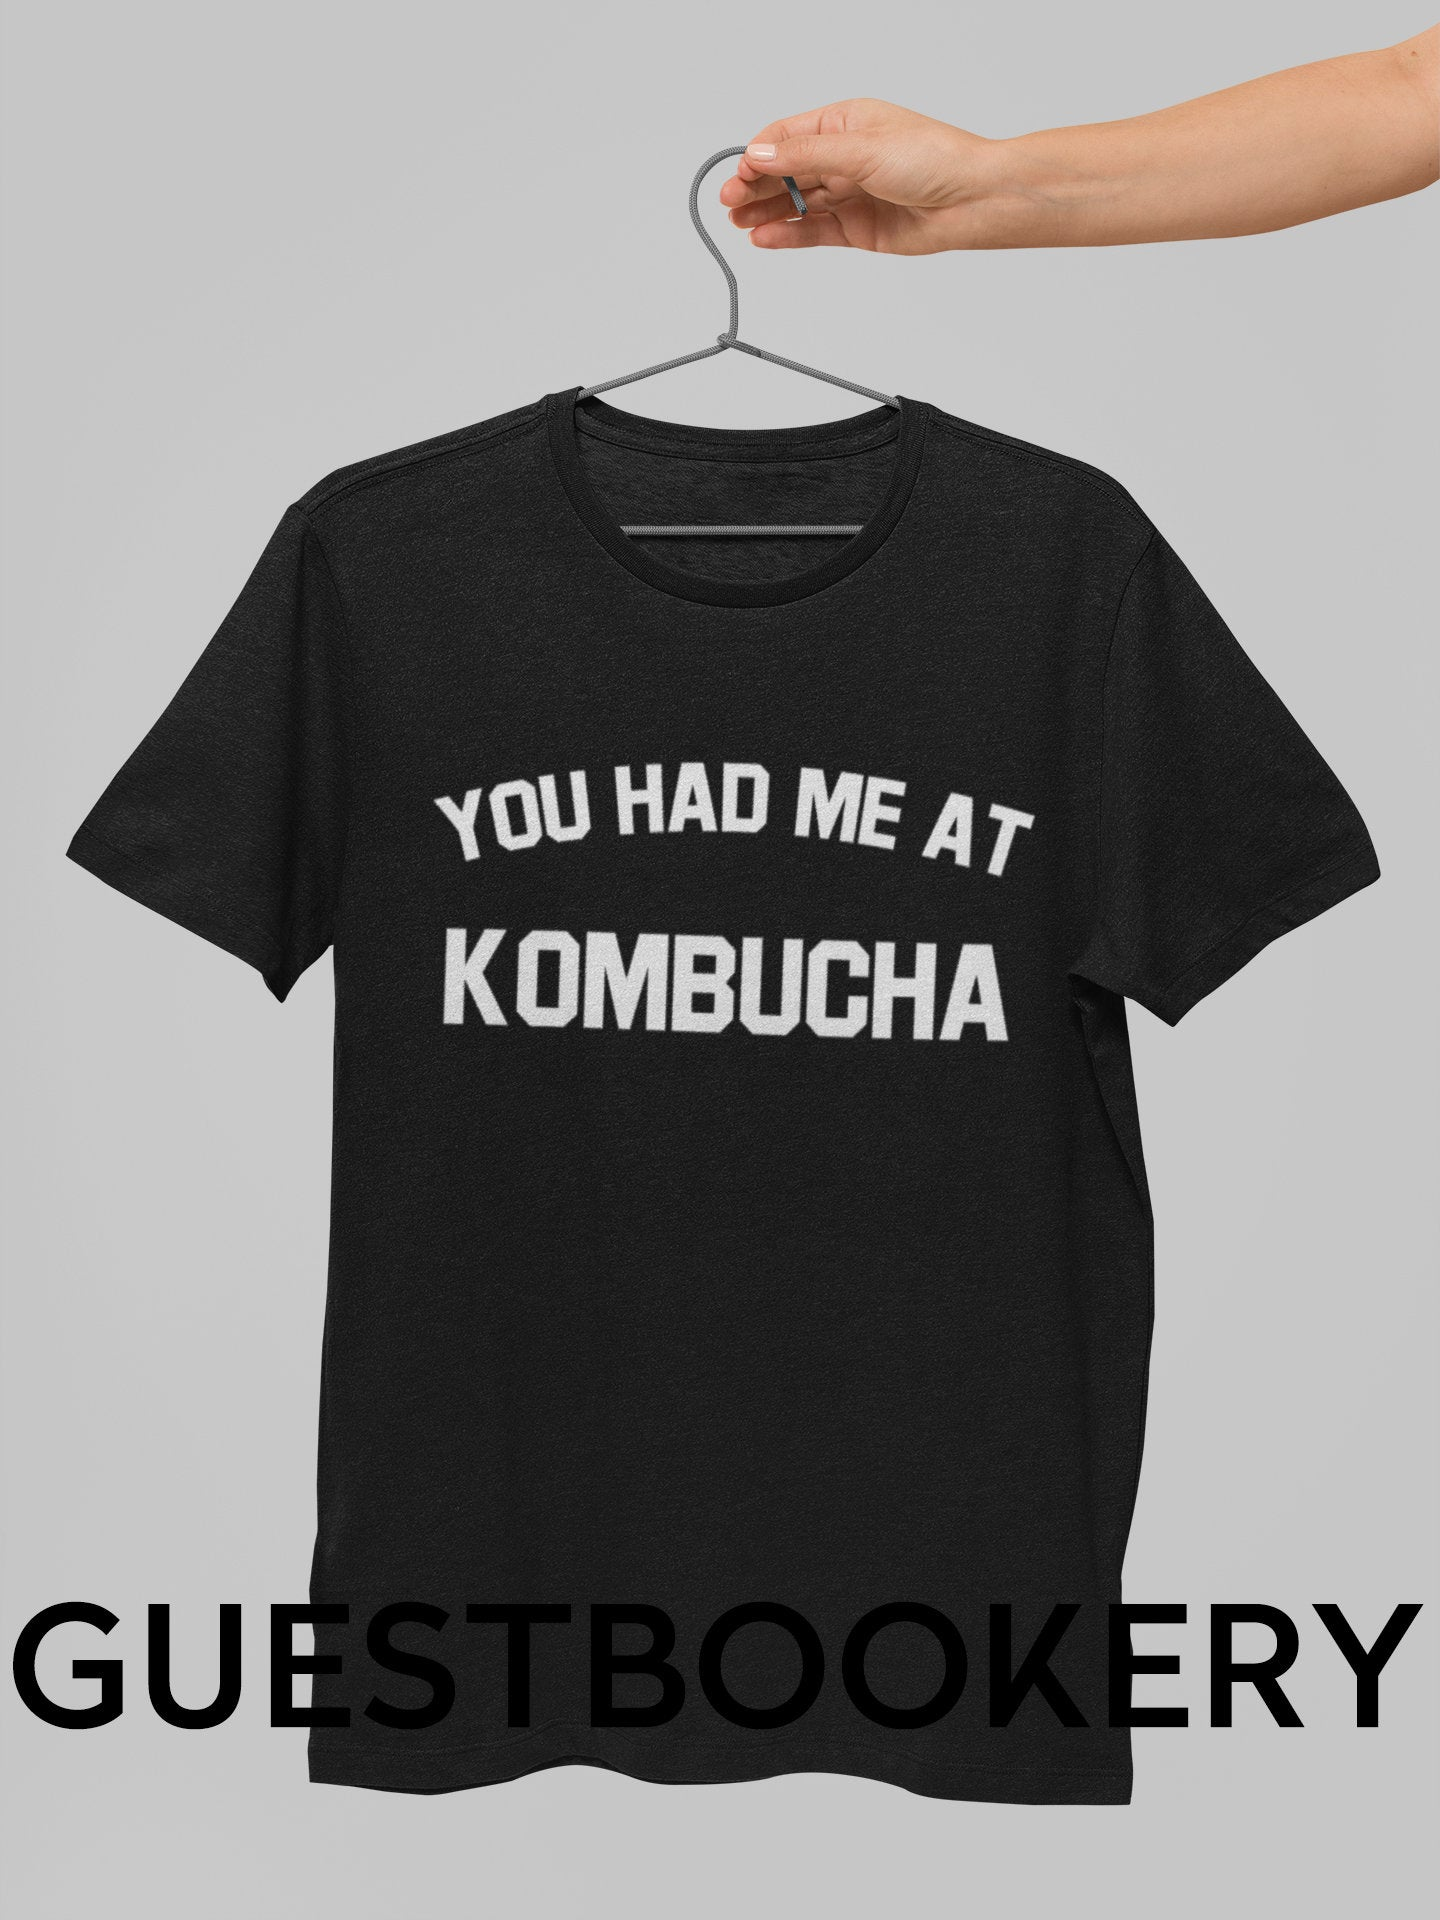 You Had Me At Kombucha T-Shirt - Guestbookery